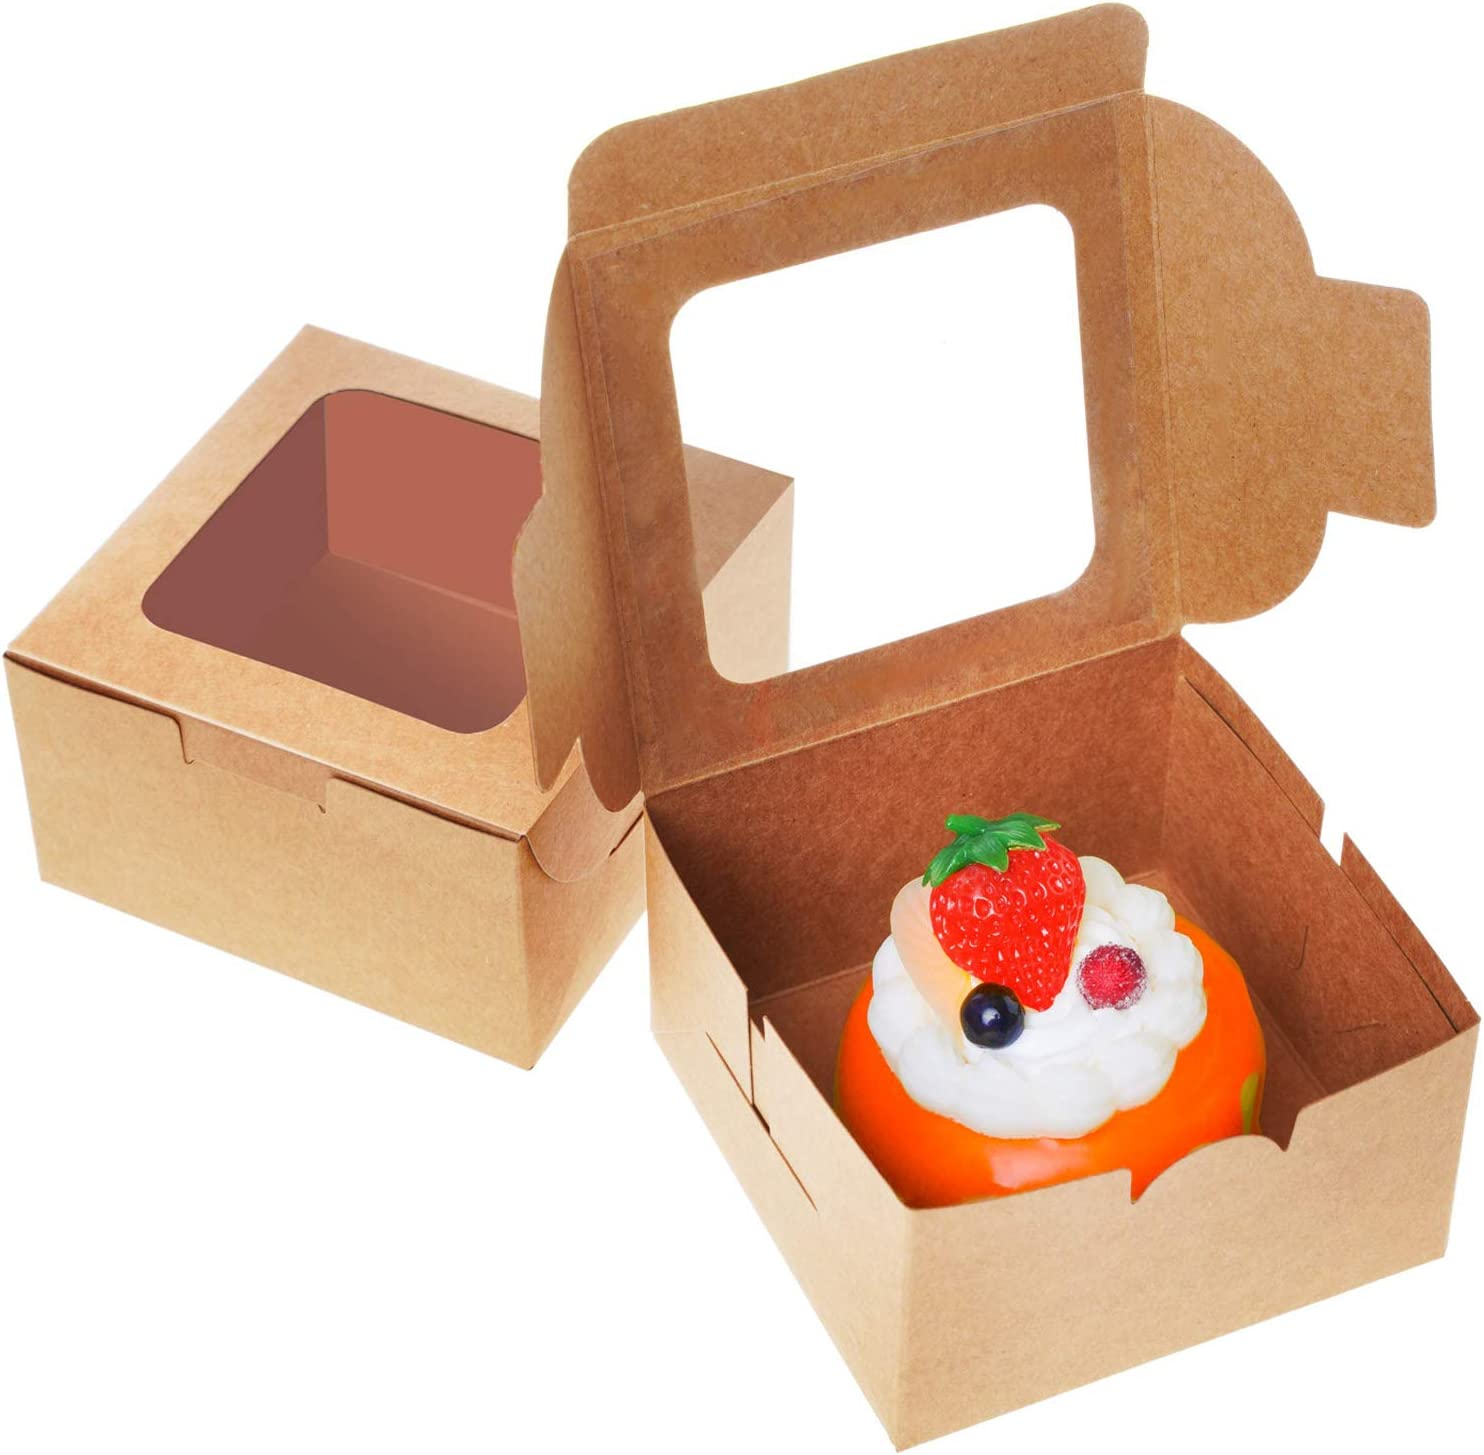 Kraft Paper Cake Boards Bakery Boxes with Auto-Popup Window, Gift Boxes 4 x 4 x 2.4 inches (Pack of 50) For Pies Cakes Cupcakes Pastries Desserts Shop